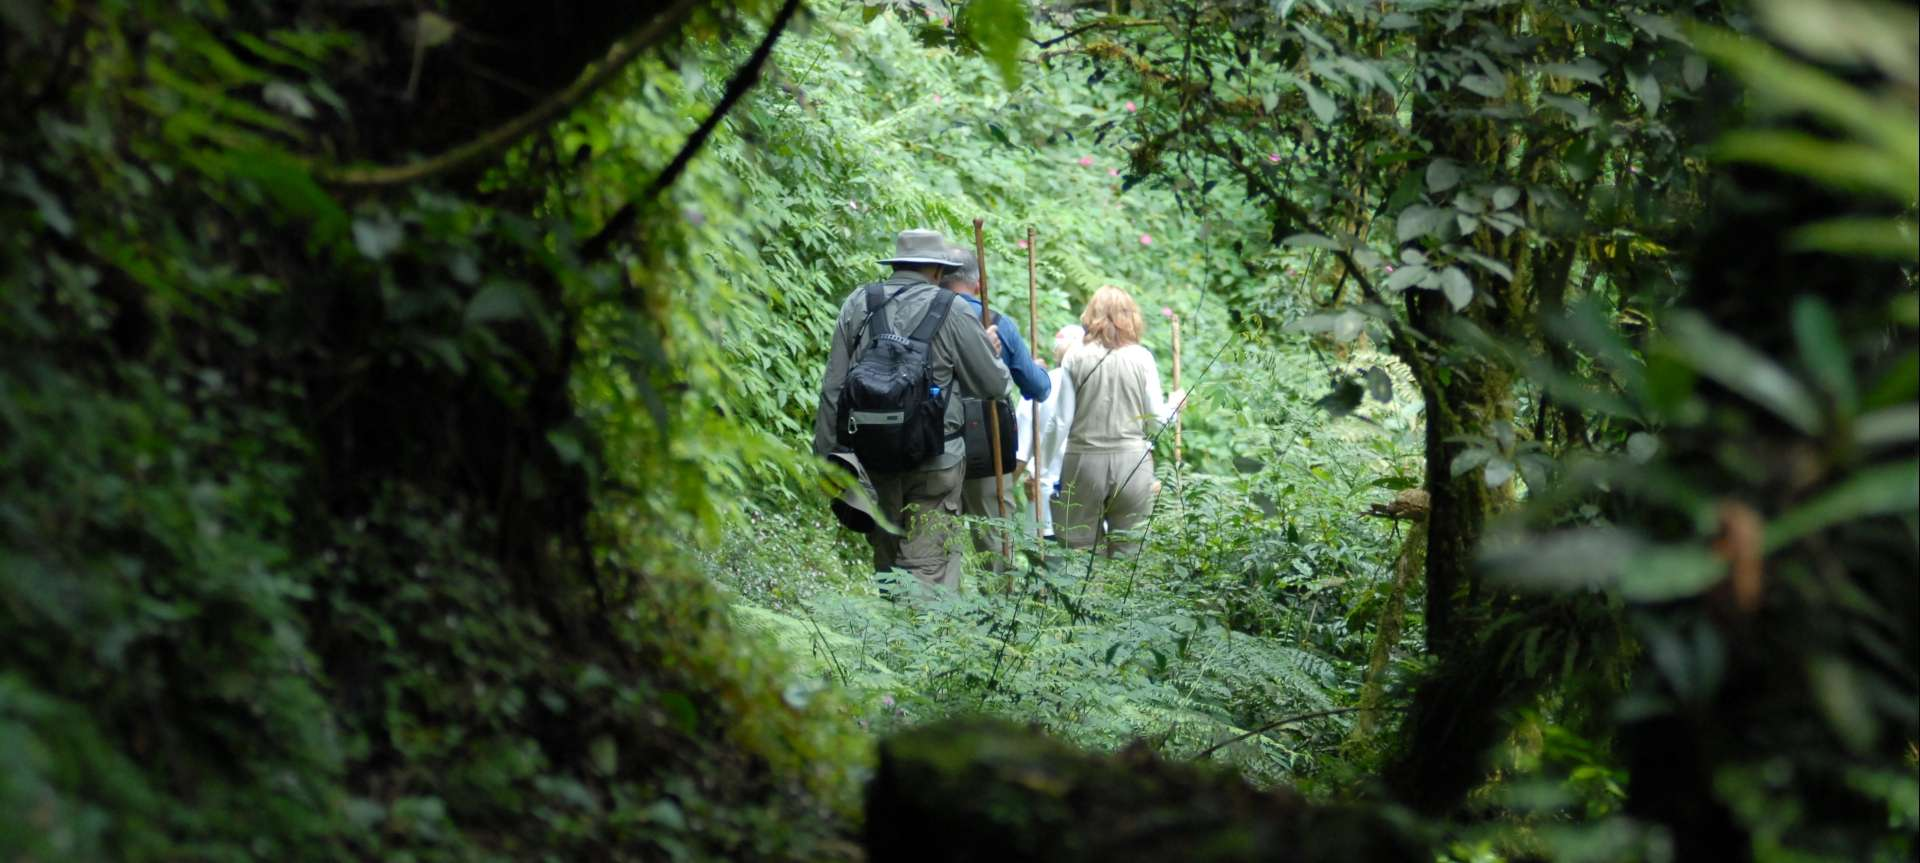 Mountain gorilla trekking in Africa - Africa Wildlife Safaris